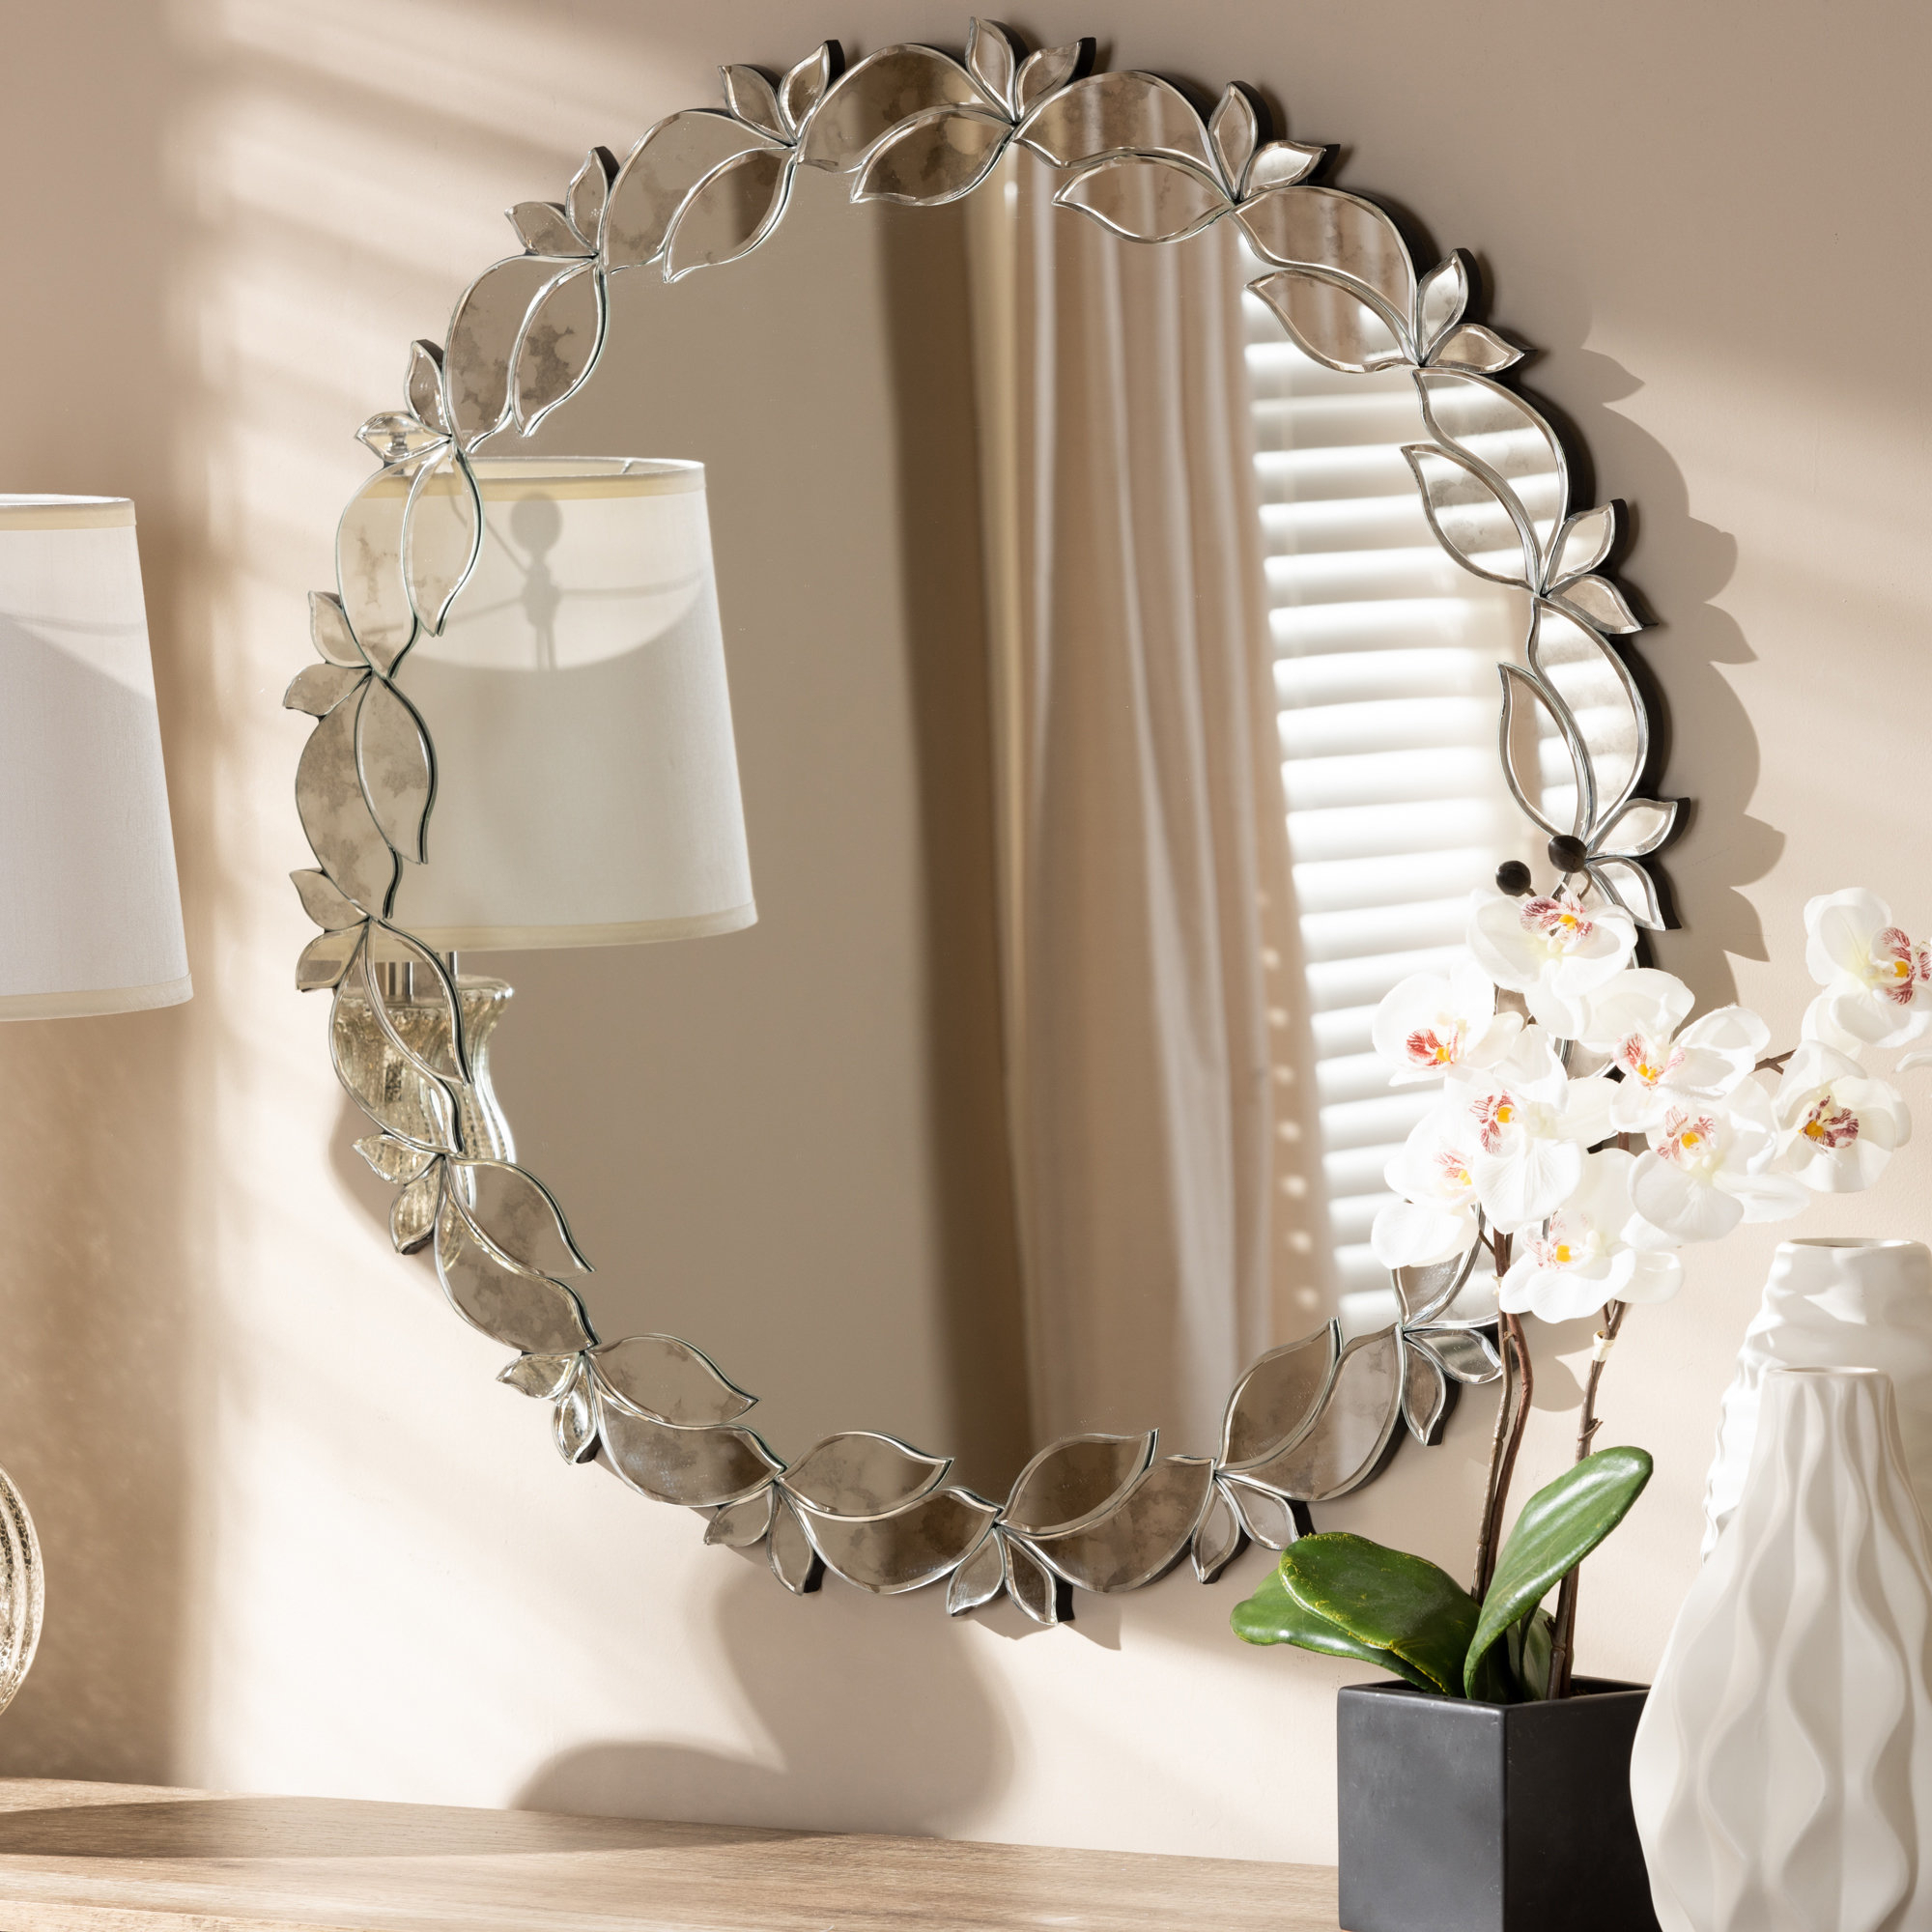 Lidya Frameless Beveled Wall Mirrors With Regard To Fashionable Isom Modern & Contemporary Wall Mirror (View 9 of 20)